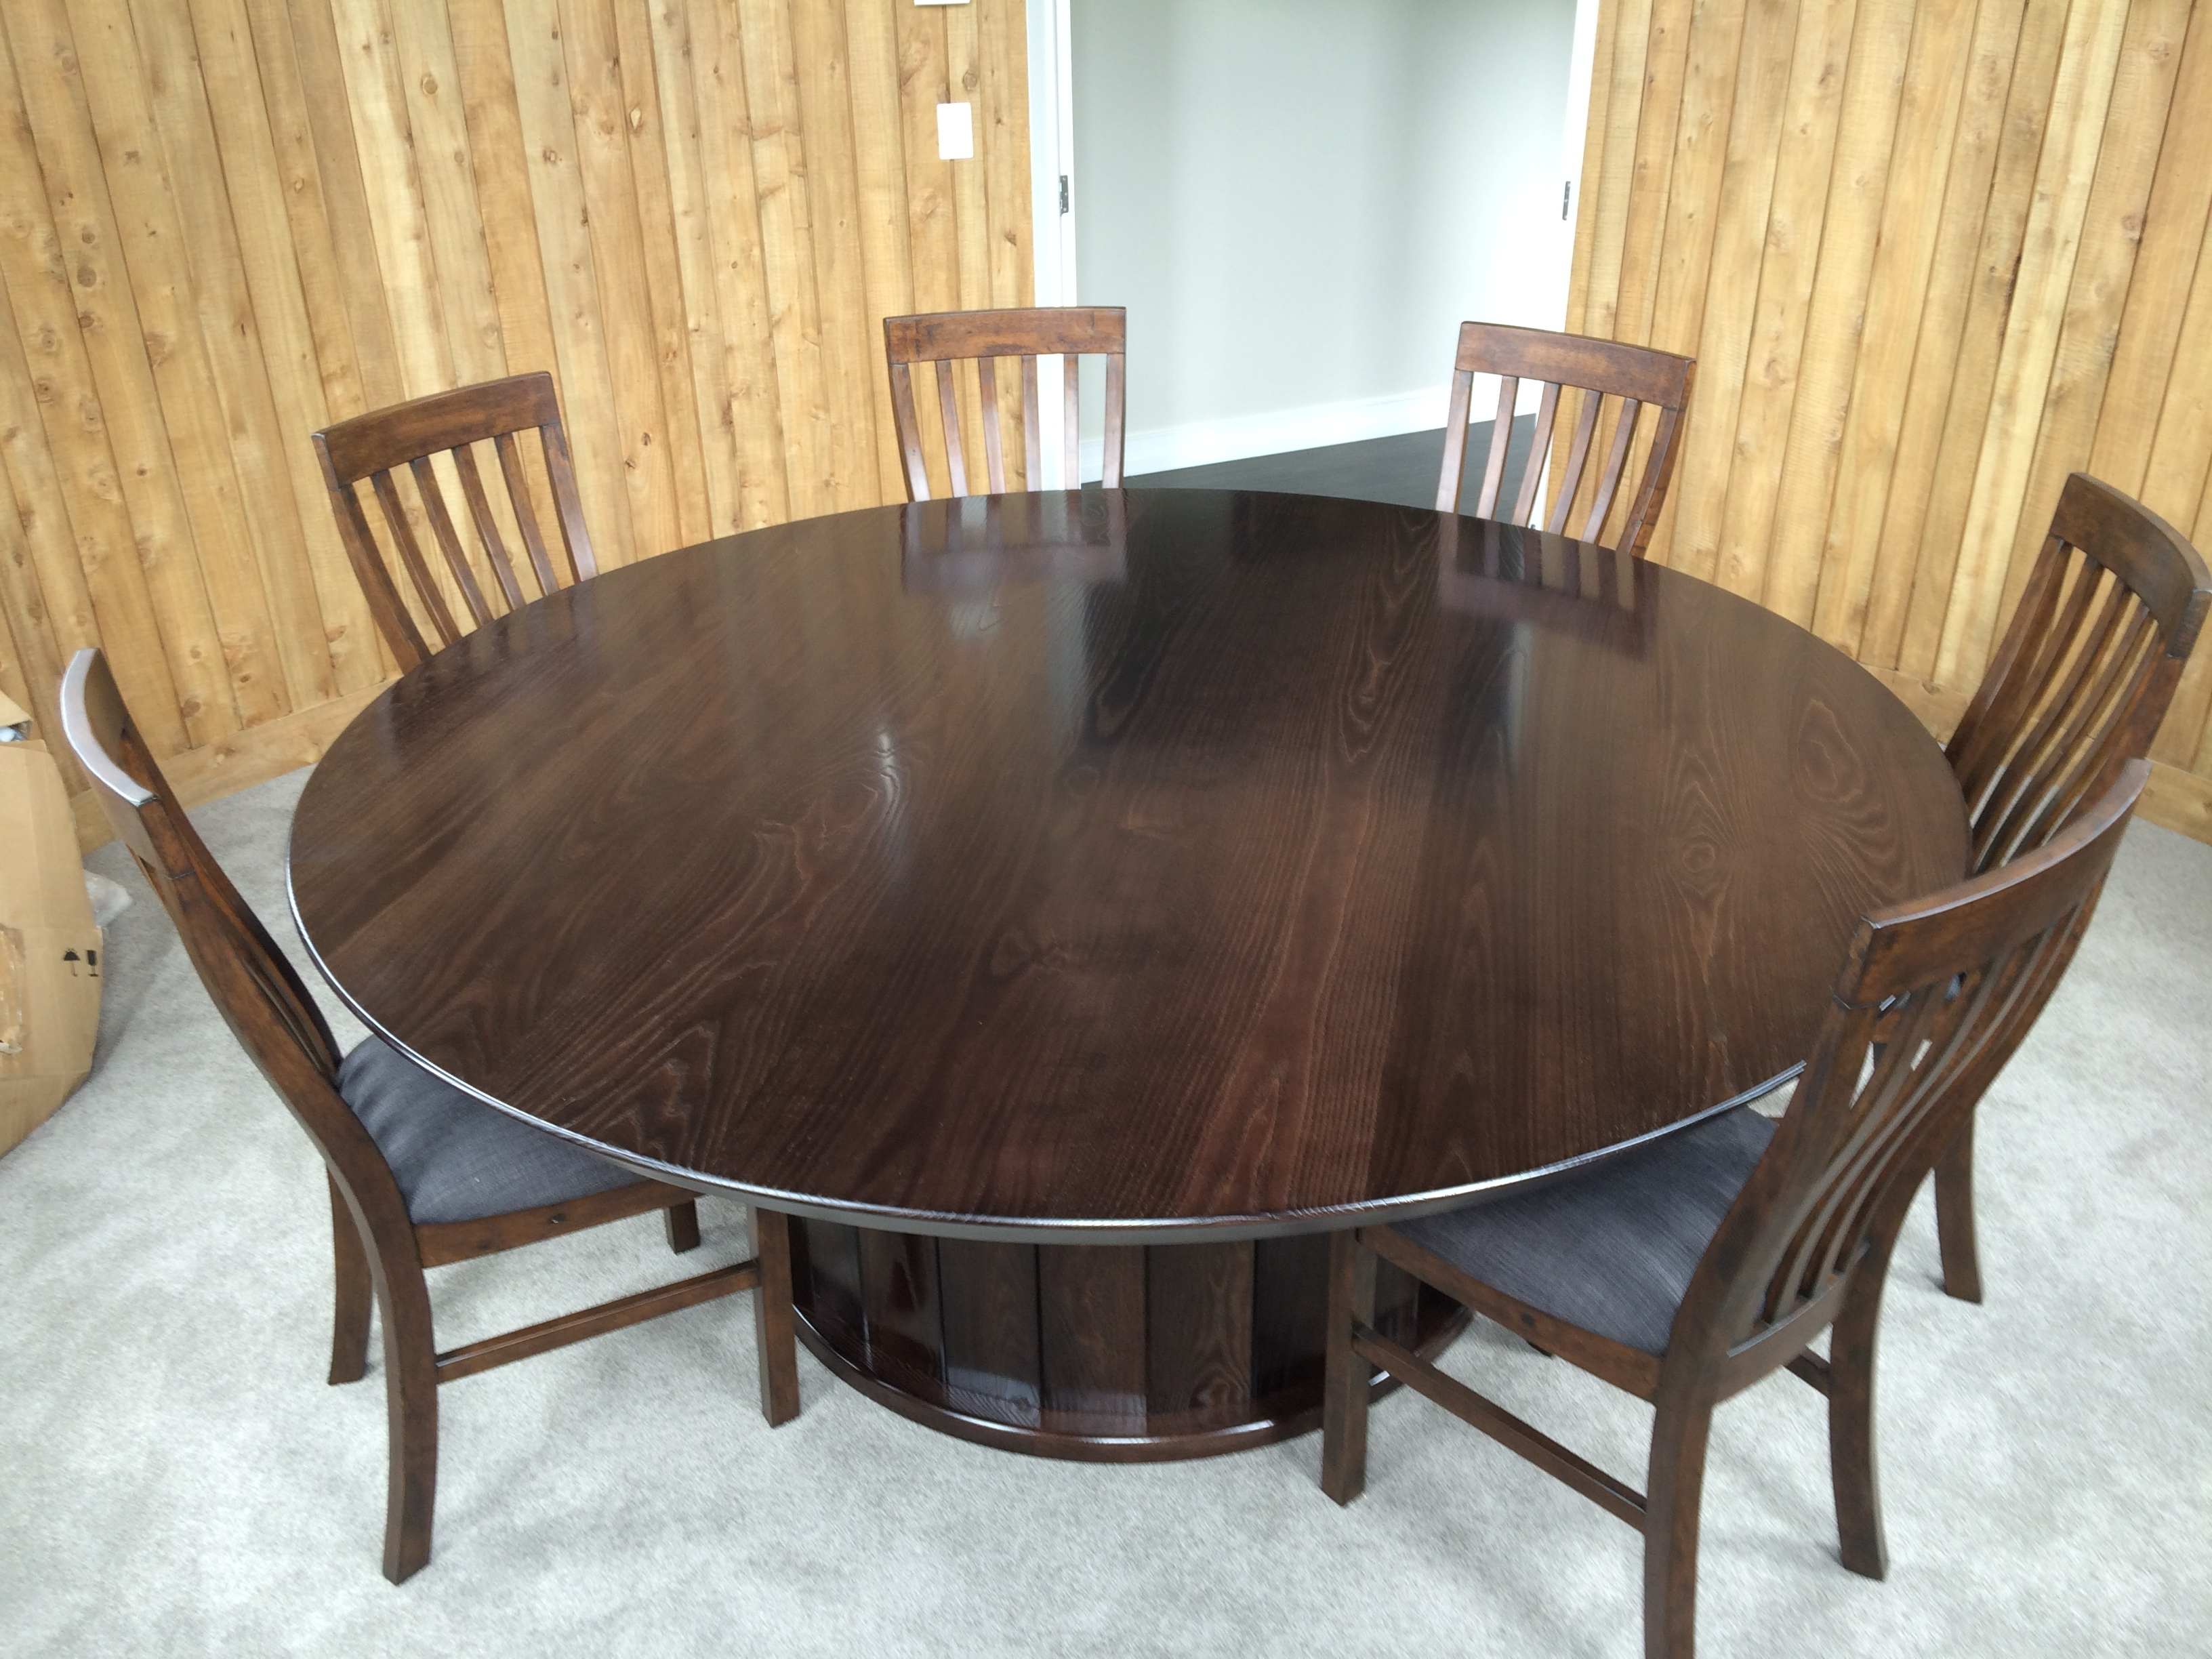 Custom Made Dining Tables & Chairs Tauranga, Hamilton, Auckland Regarding Well Known Hamilton Dining Tables (Gallery 9 of 25)